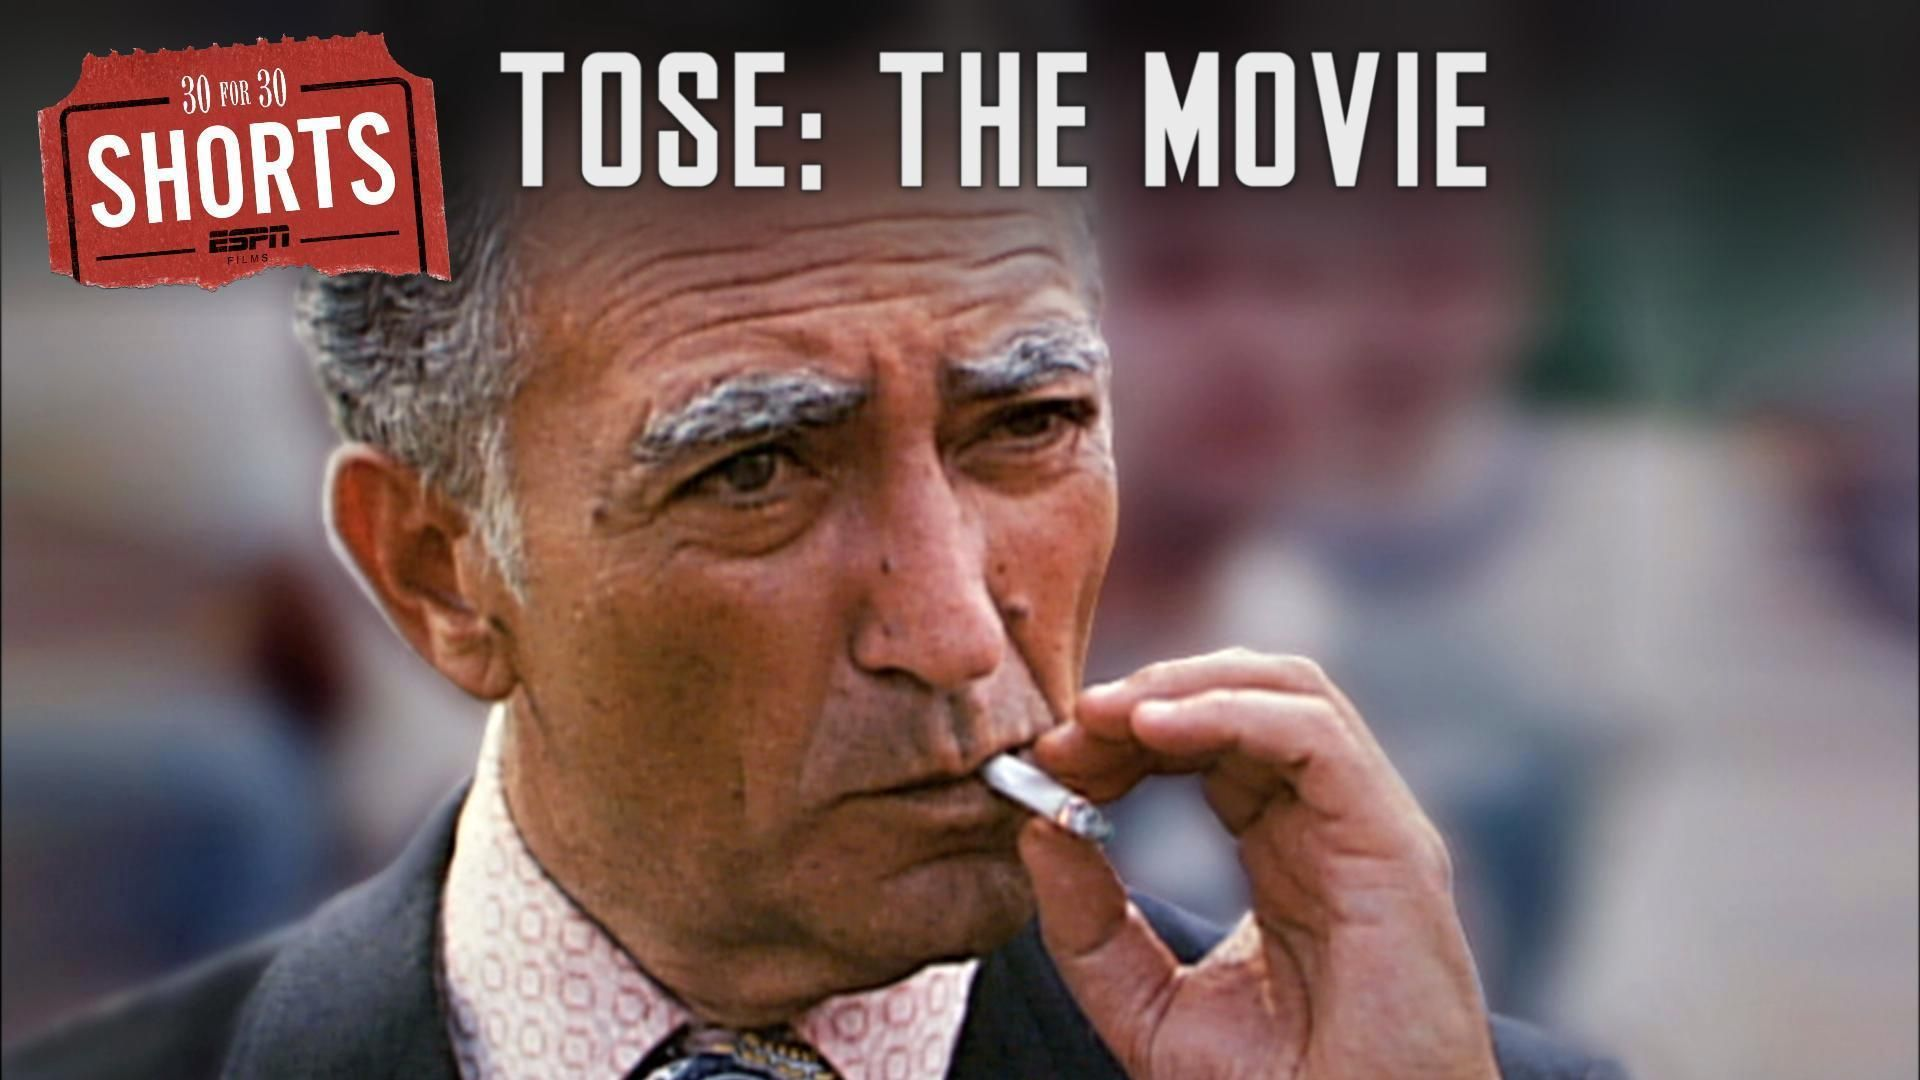 30 for 30 Shorts: Tose The Movie